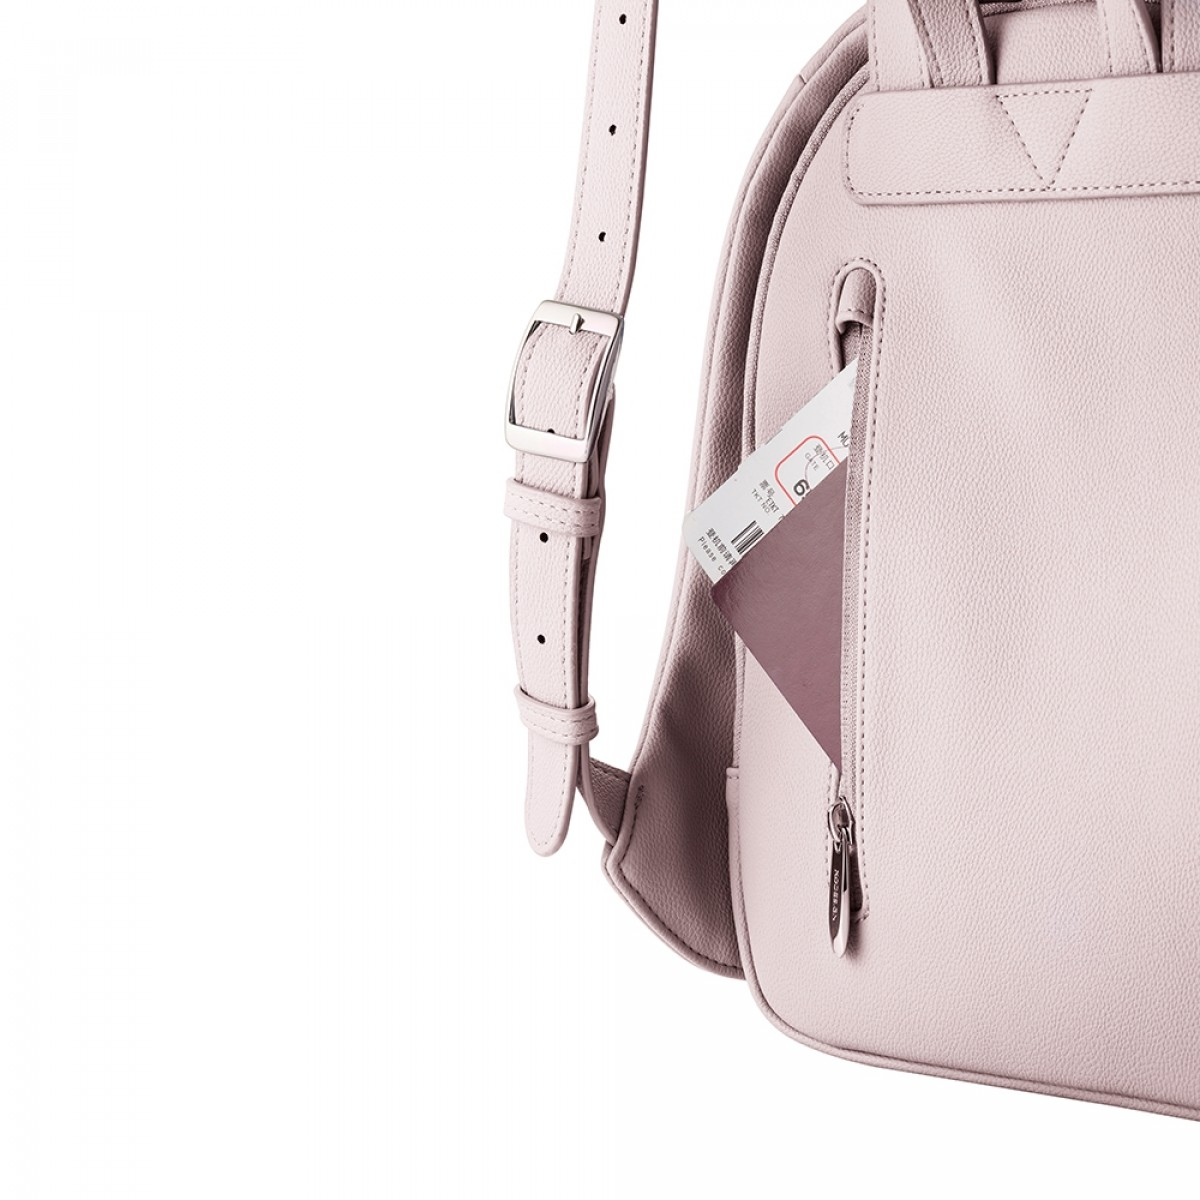 Bobby elle anti-theft backpack pink